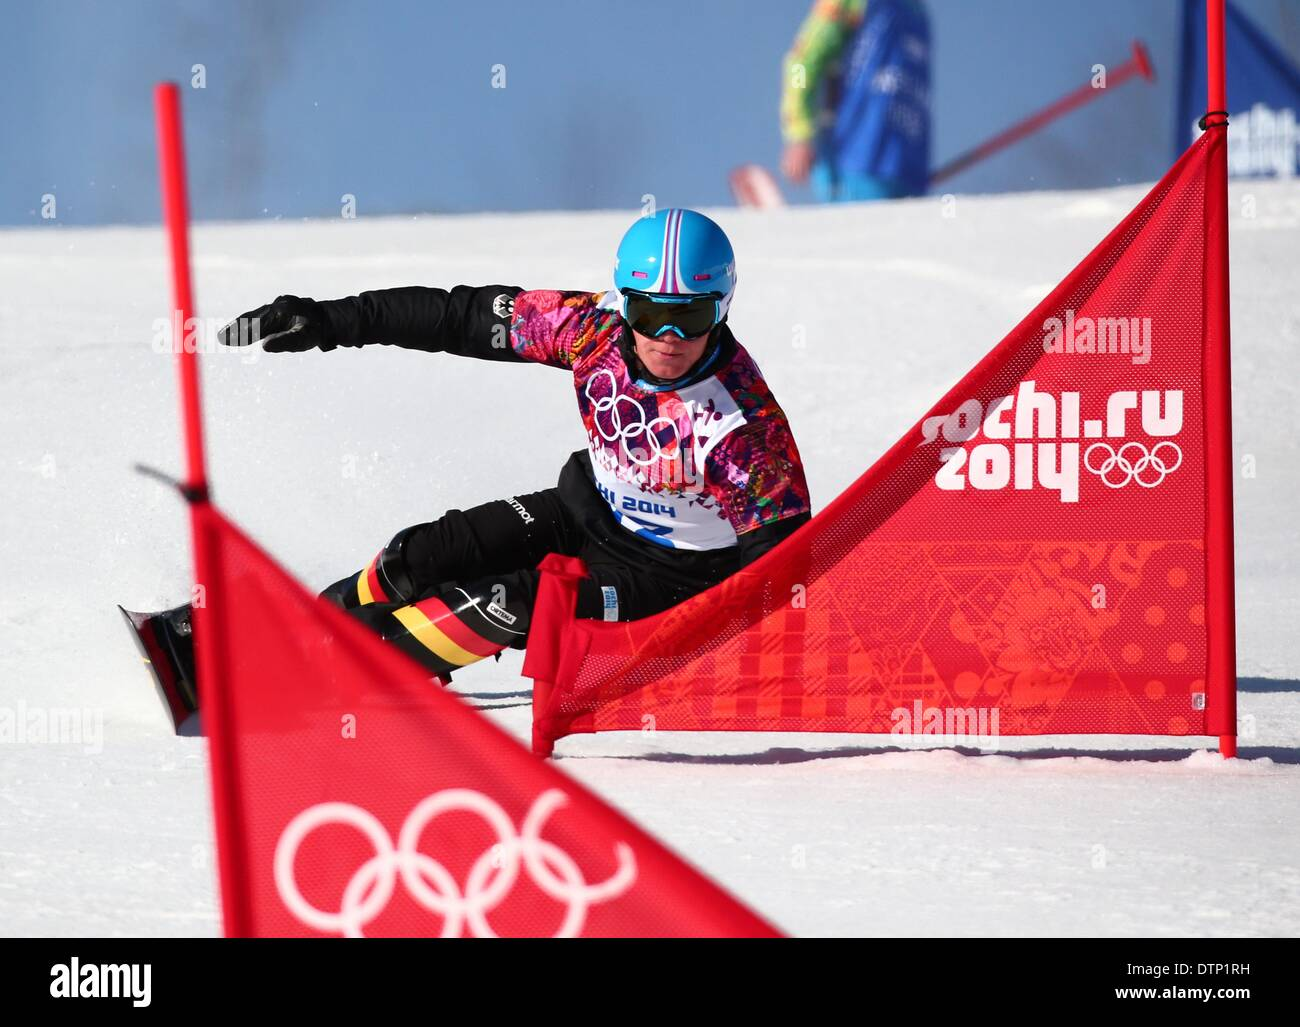 Sochi, Russia. 22nd February 2014. Stefan Baumeister of Germany in action during the Men's Snowboard Parallel - Stock Image